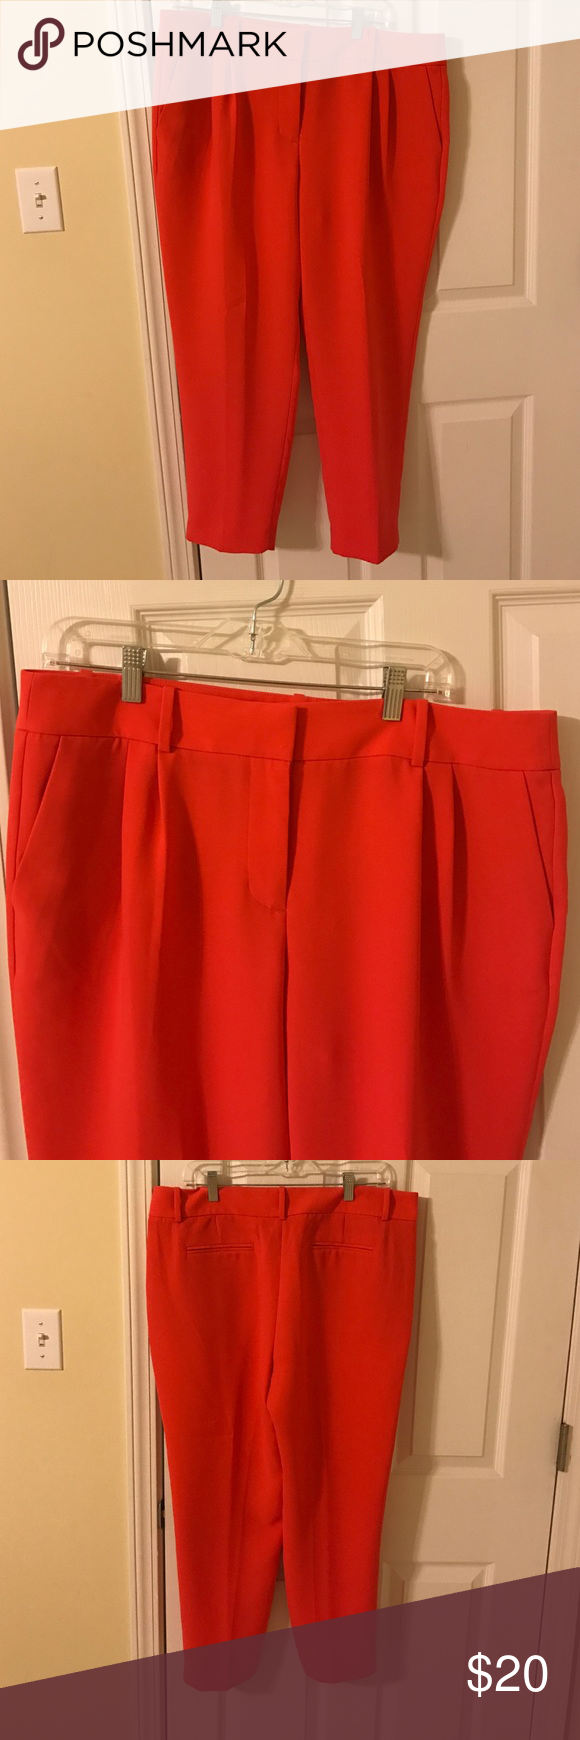 Coral dress pants Brand new coral colored dress pants from J Crew.  Never worn! J. Crew Factory Pants Ankle & Cropped